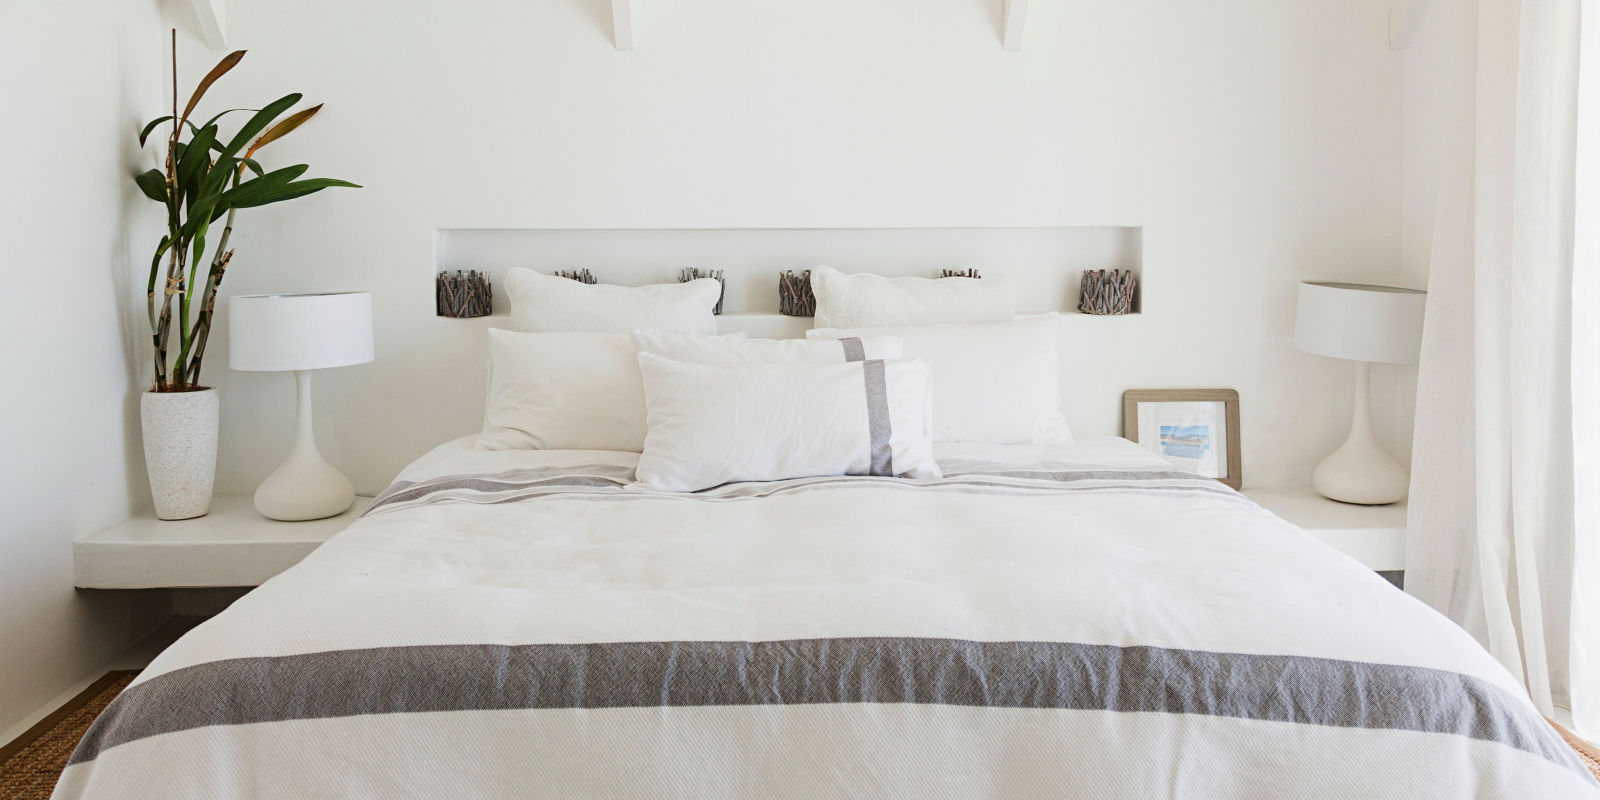 The Best Bedding Sets Nov Buyers Guide And Reviews - Winners bedding